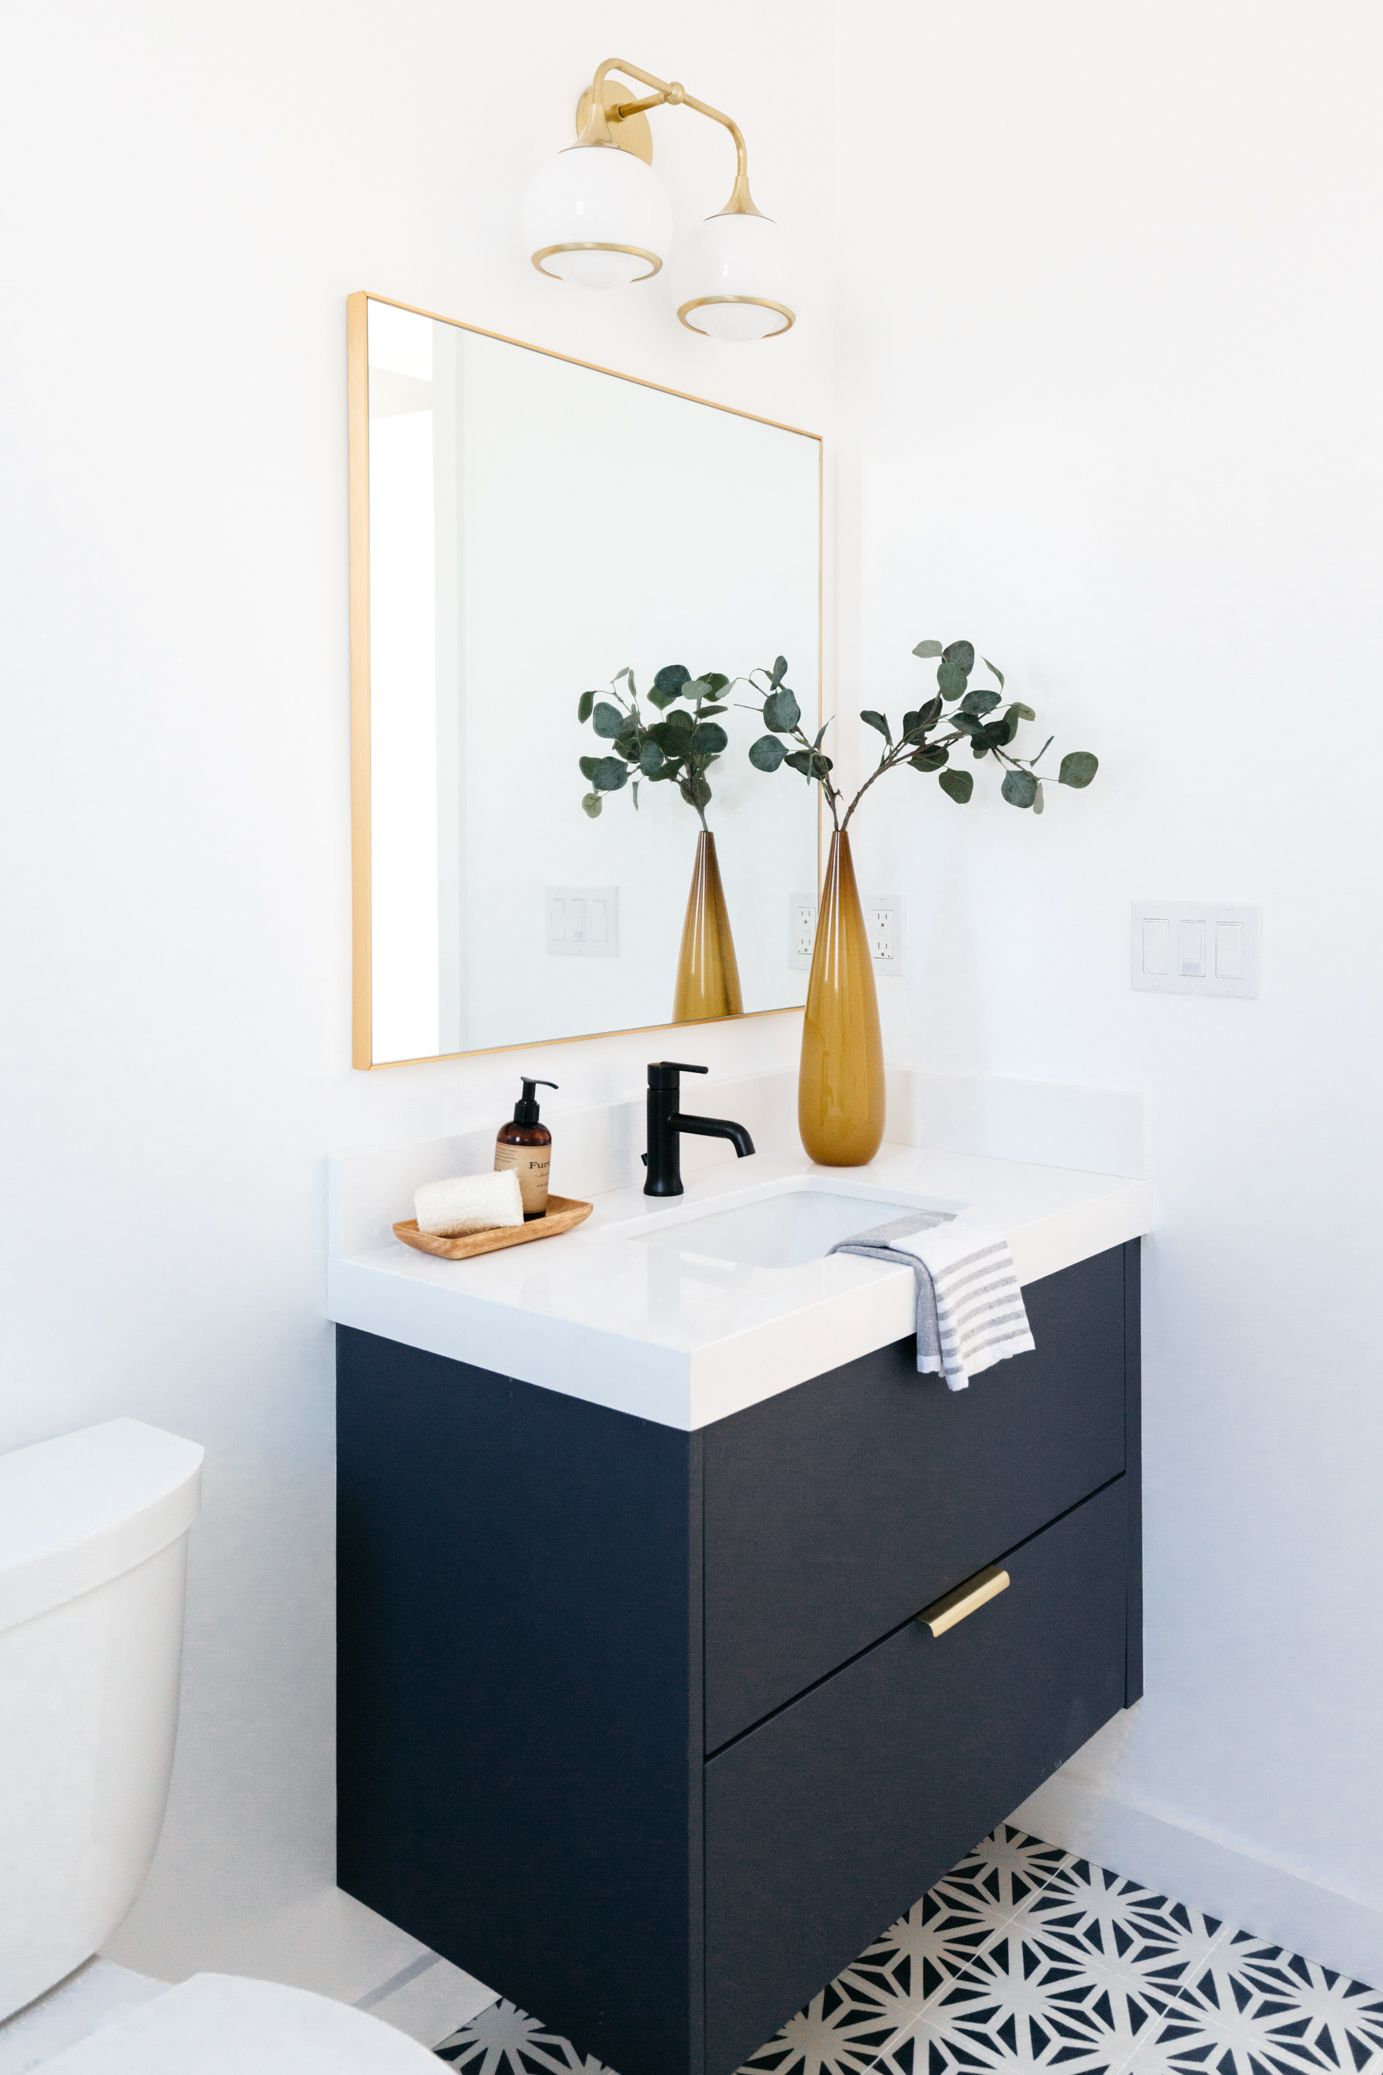 Semihandmade Cabinet Fronts In The Bathroom Bathroom Interior Design Bathroom Interior Ikea Kitchen Cabinets